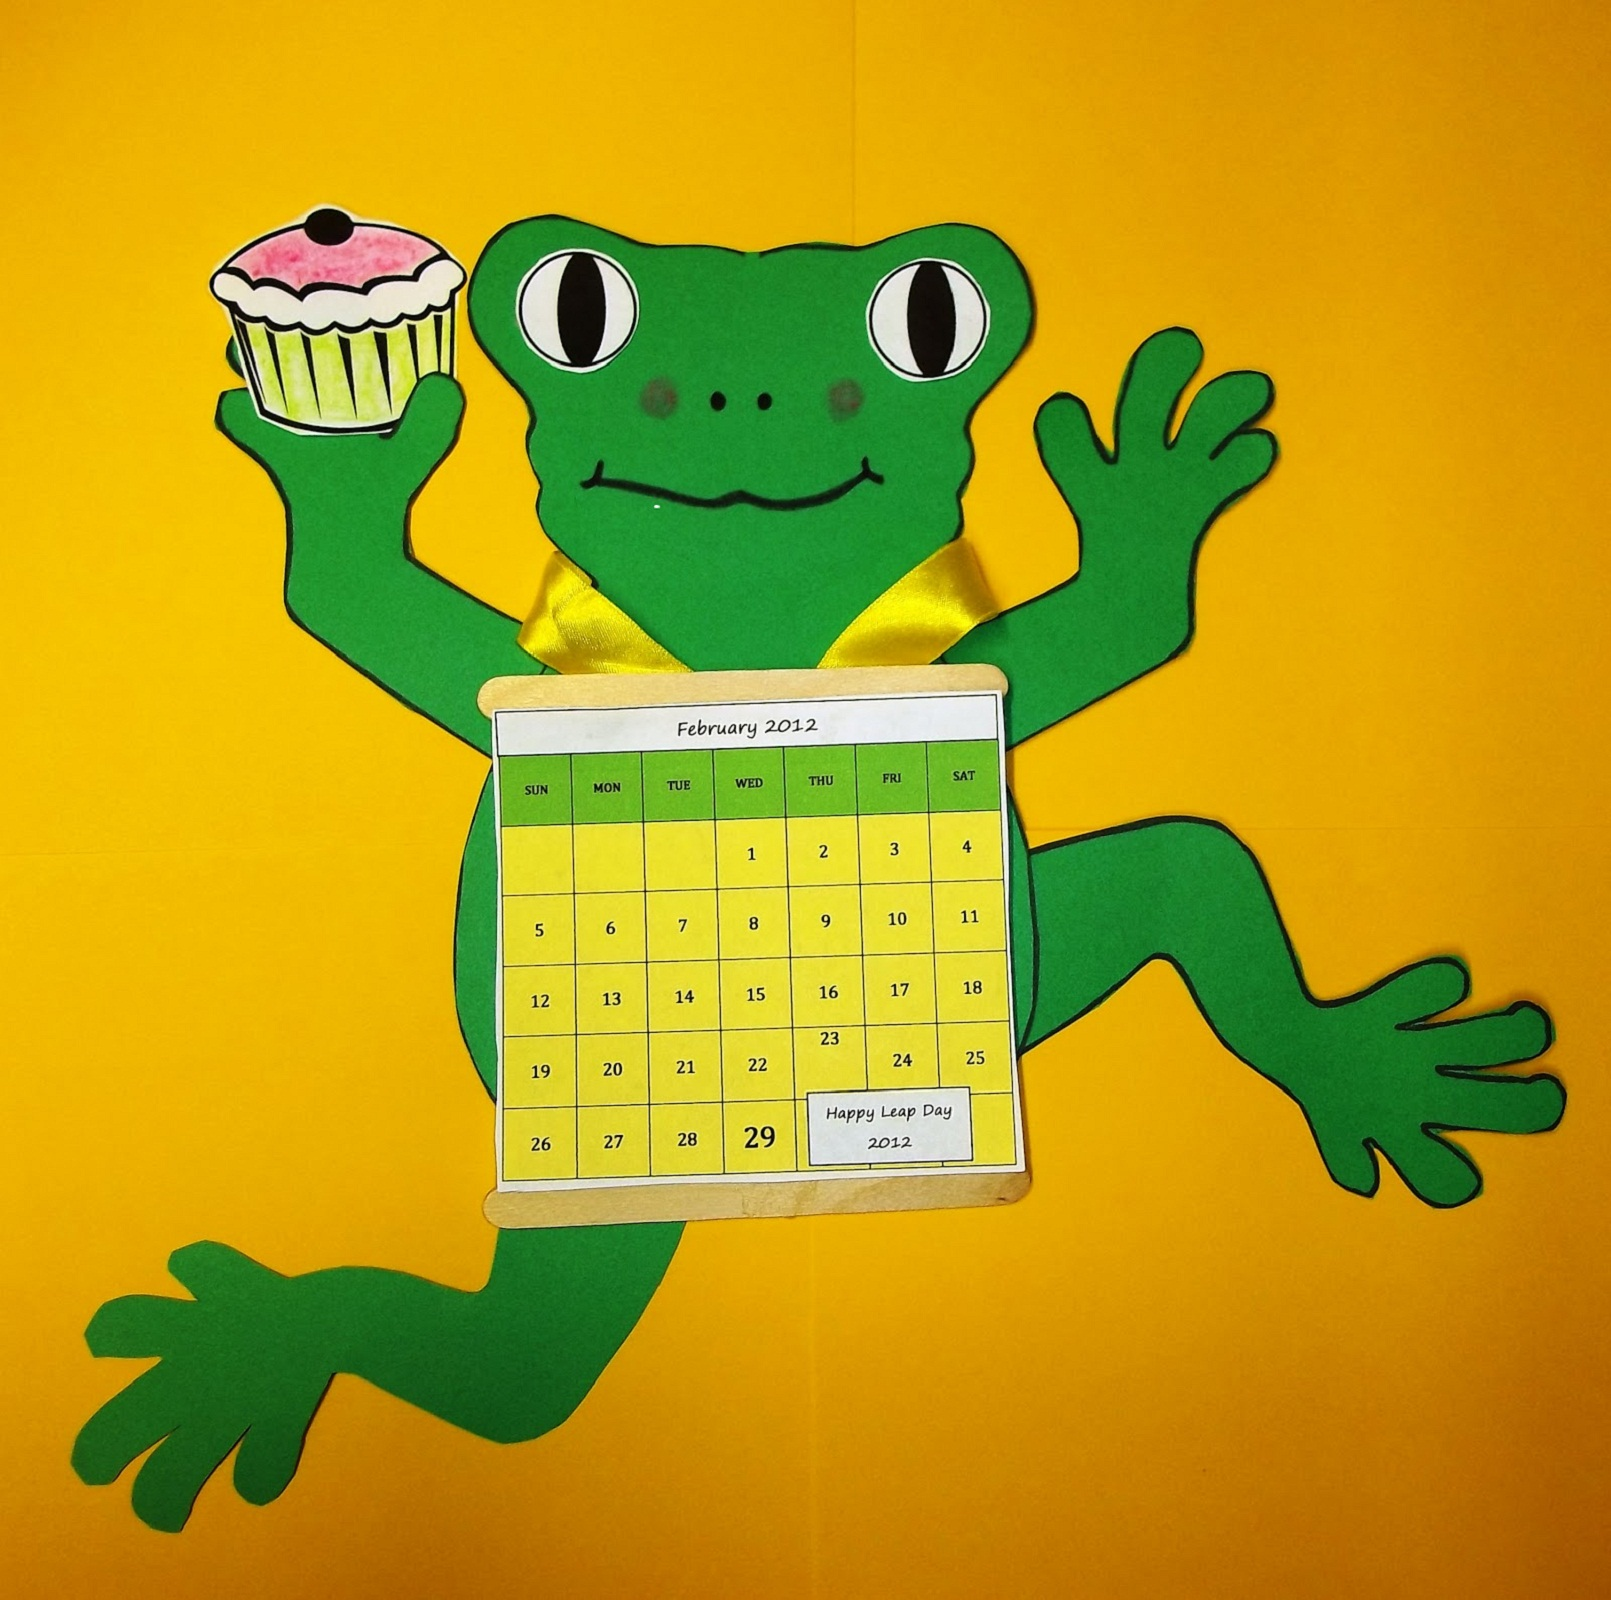 frog-activities-for-kids-day-craft